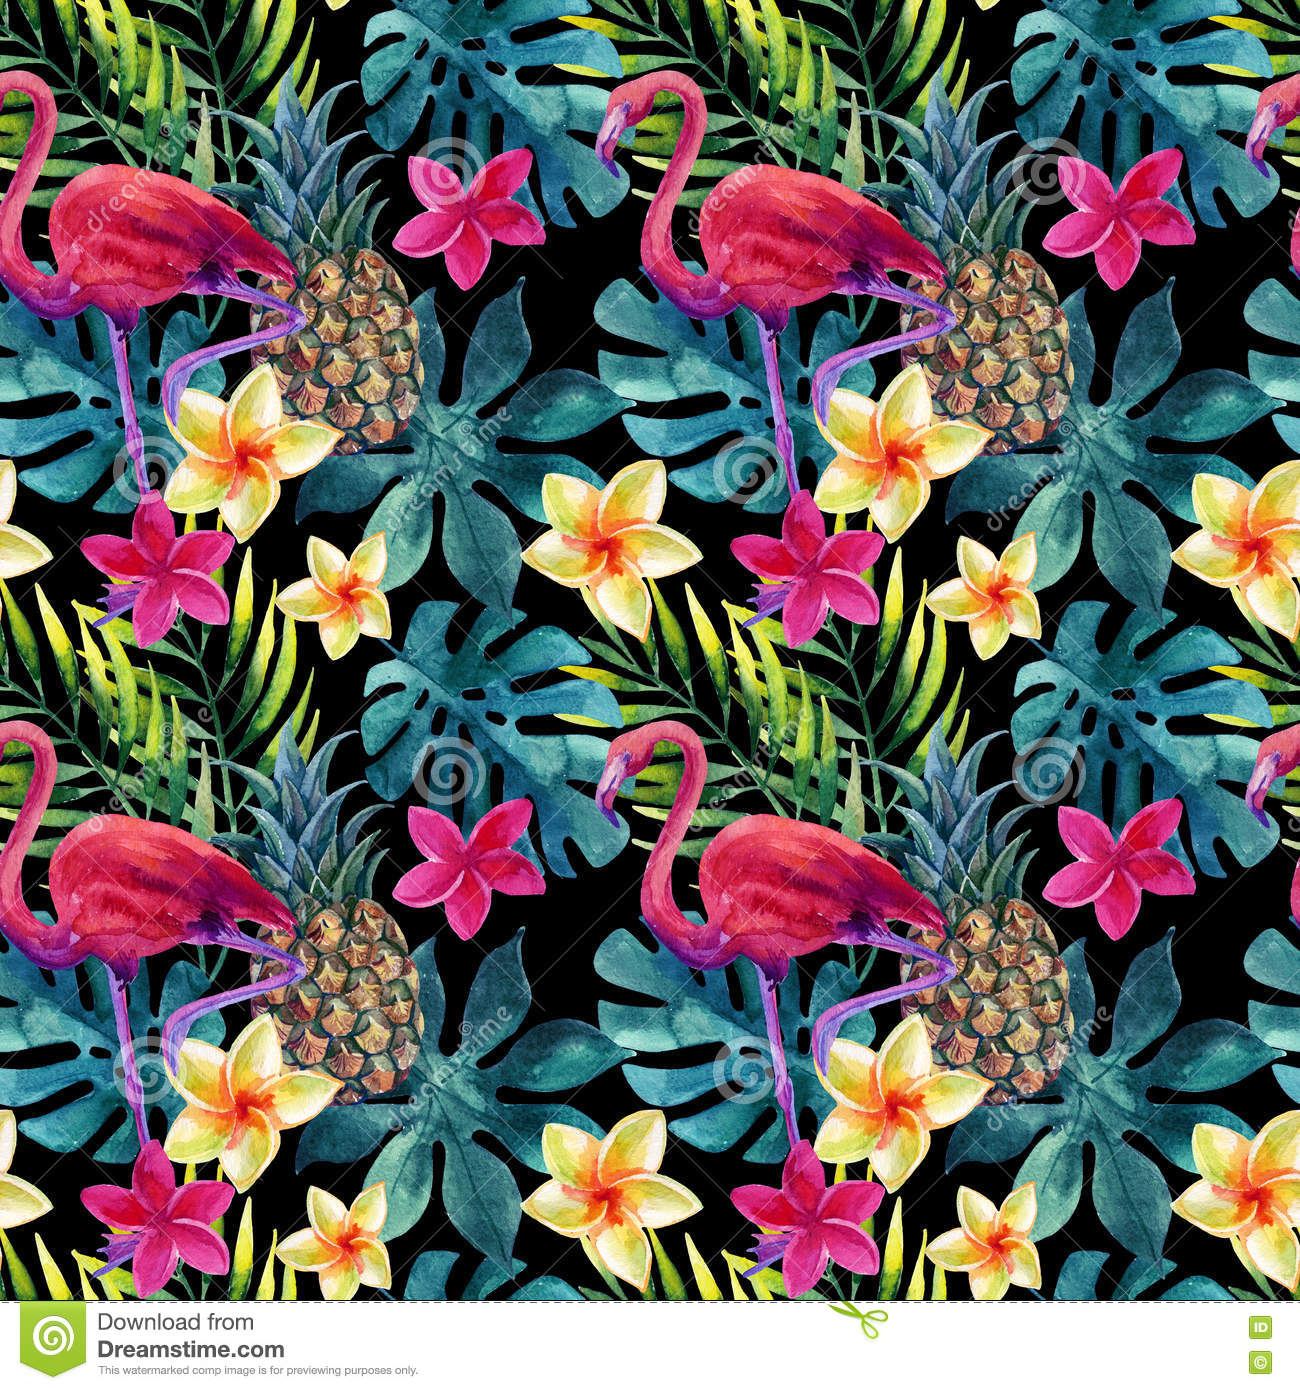 Animal Print Pink Wallpaper Tropical Watercolor Pineapple Flowers And Leaves With